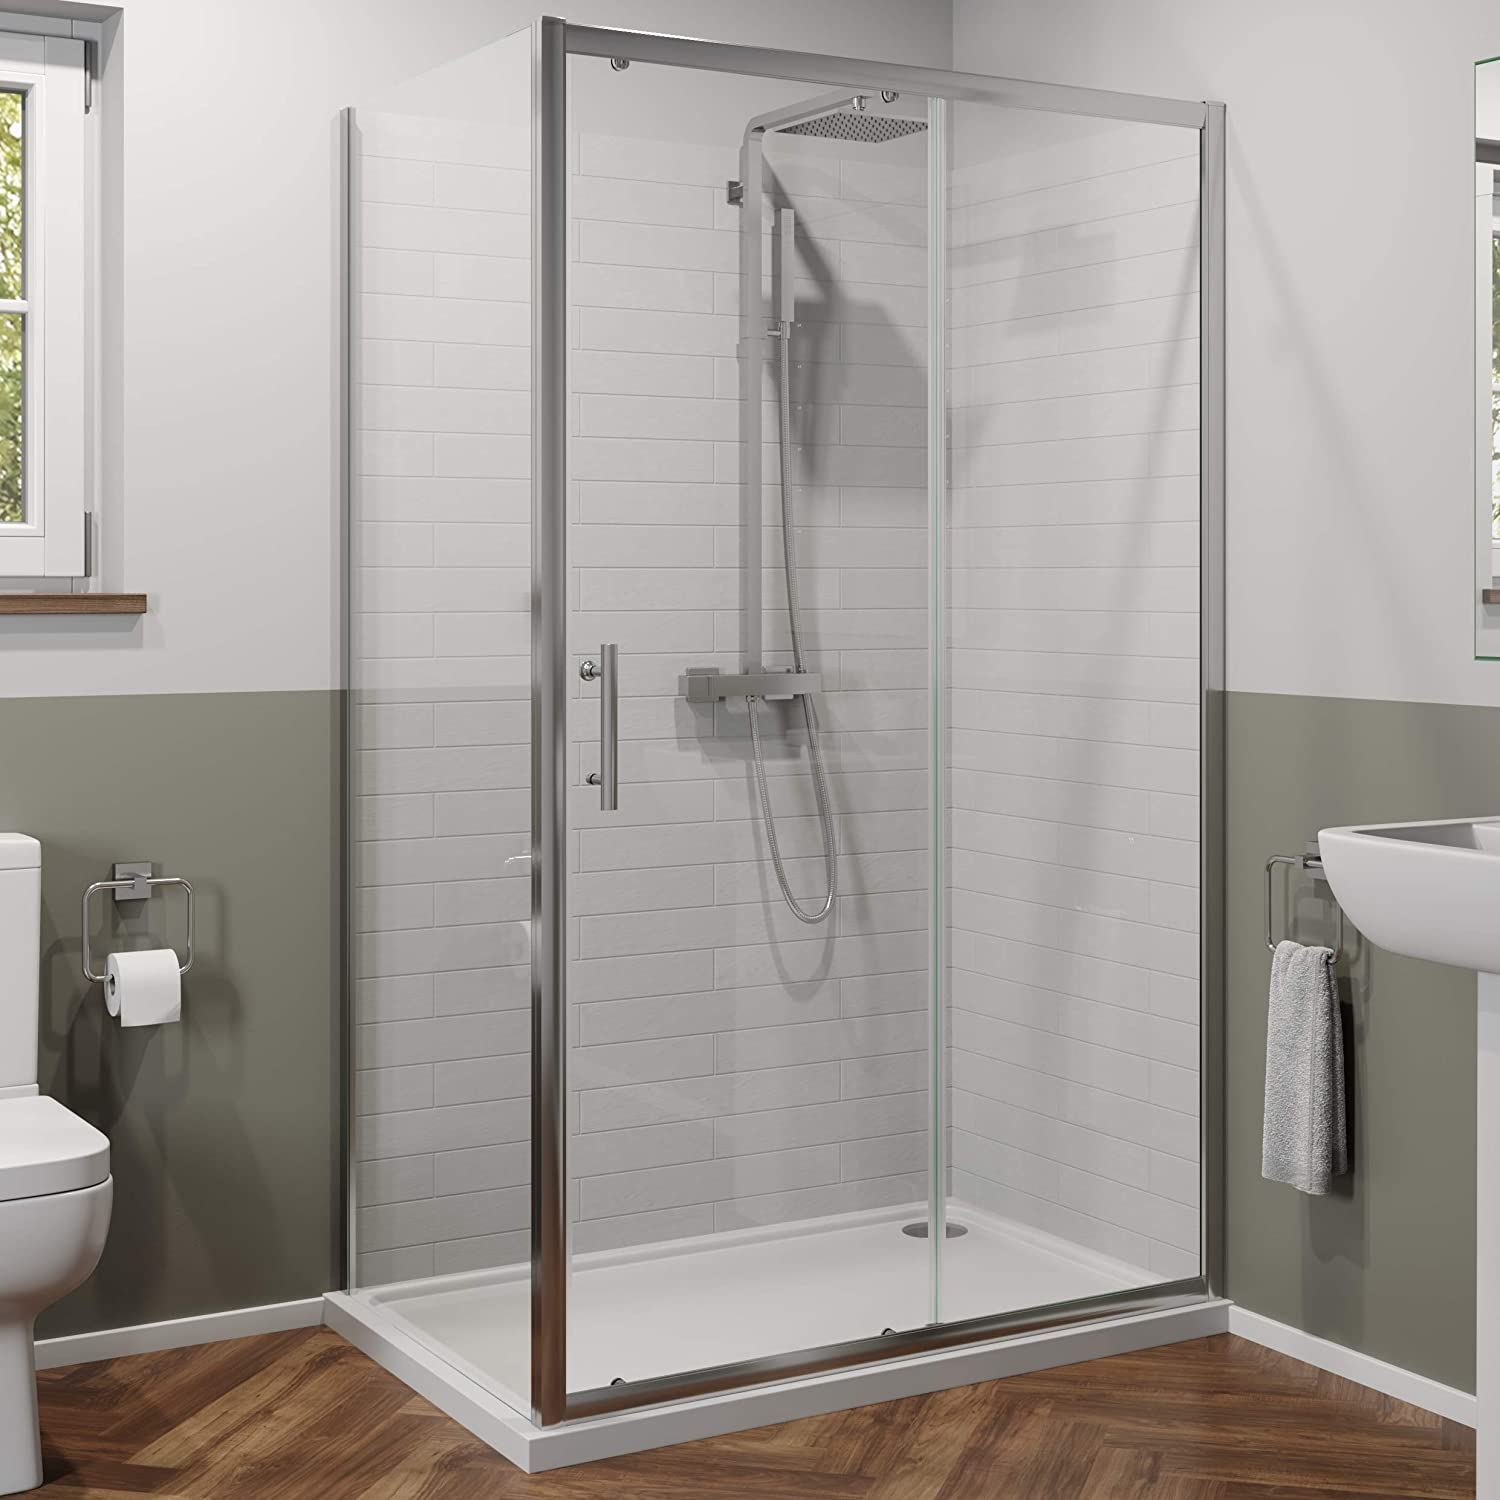 Twyford - Puerta de Ducha corredera y Panel Lateral para baño (1100 x 760 mm, Cristal endurecido, 6 mm): Amazon.es: Hogar